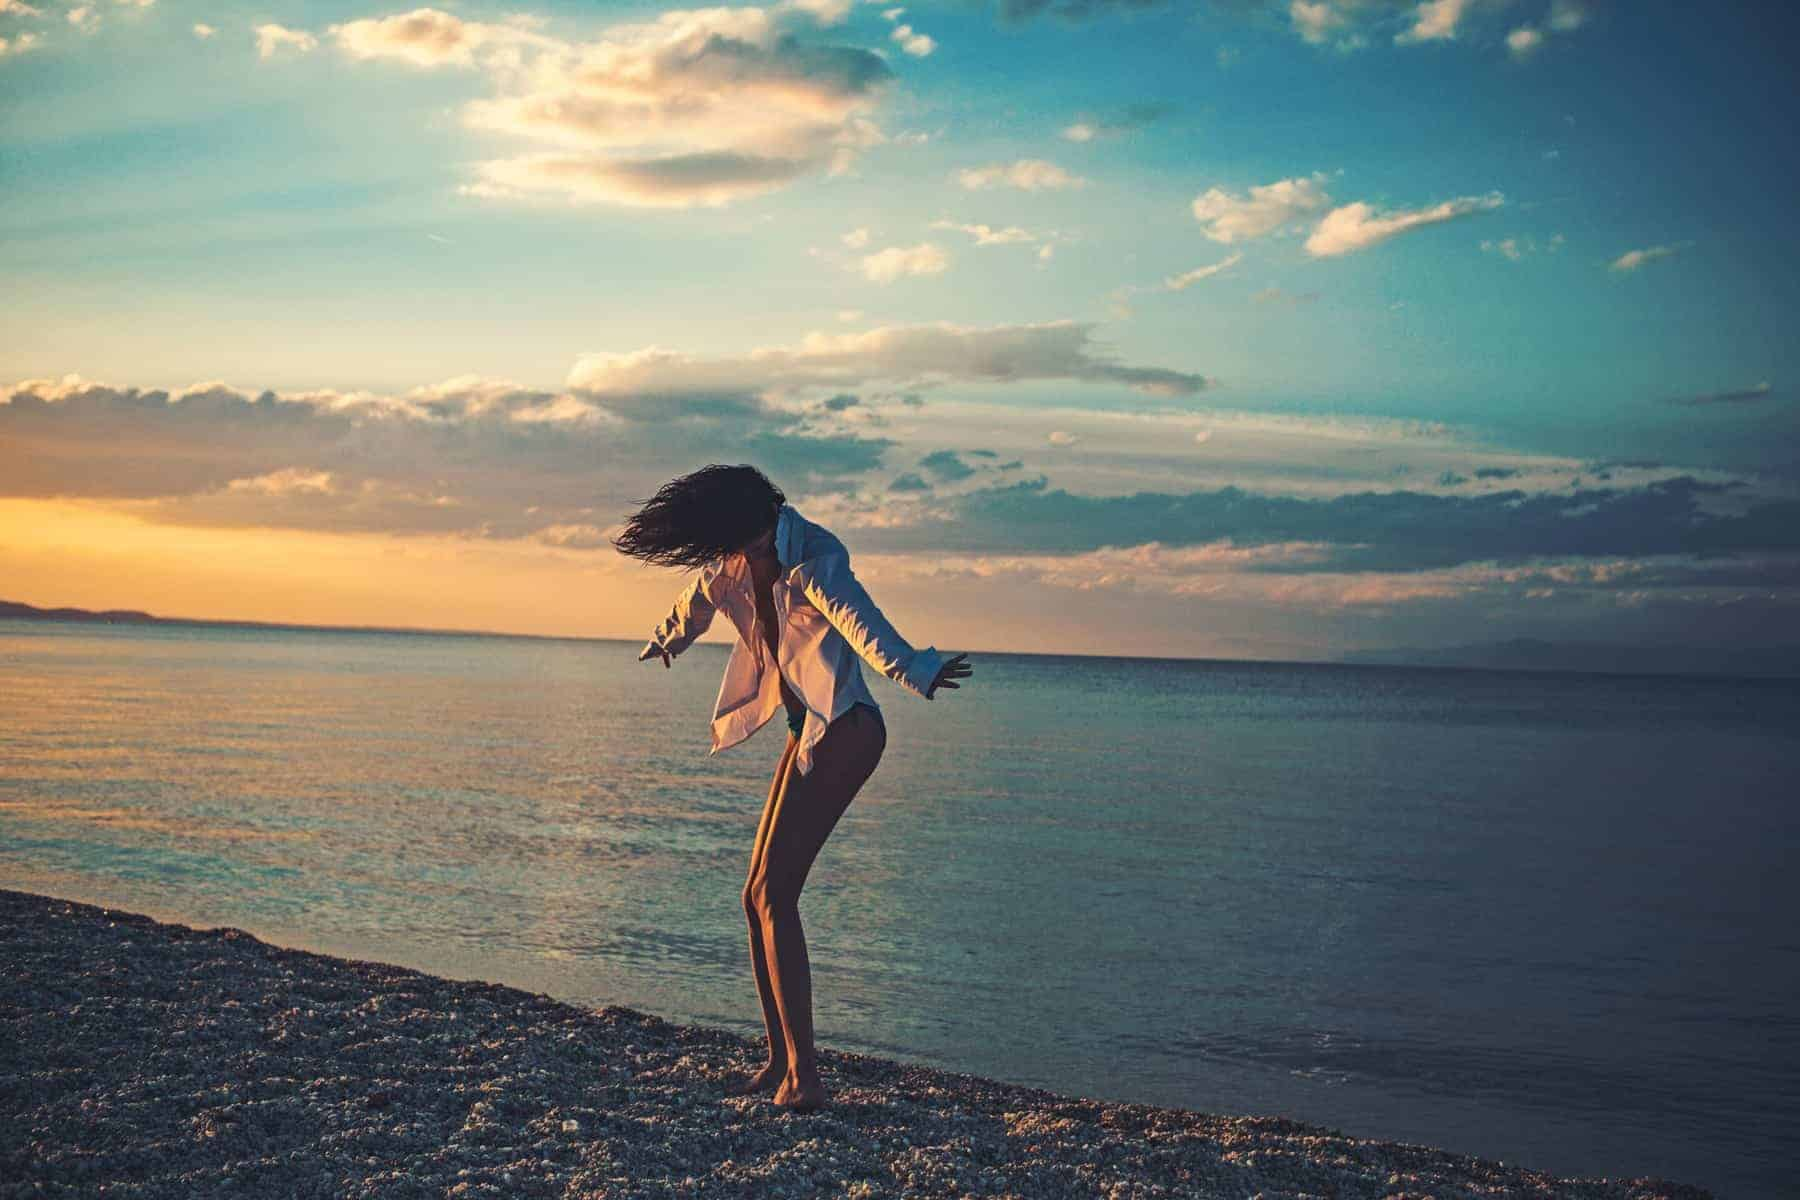 Bahama girl dancing in the sunset